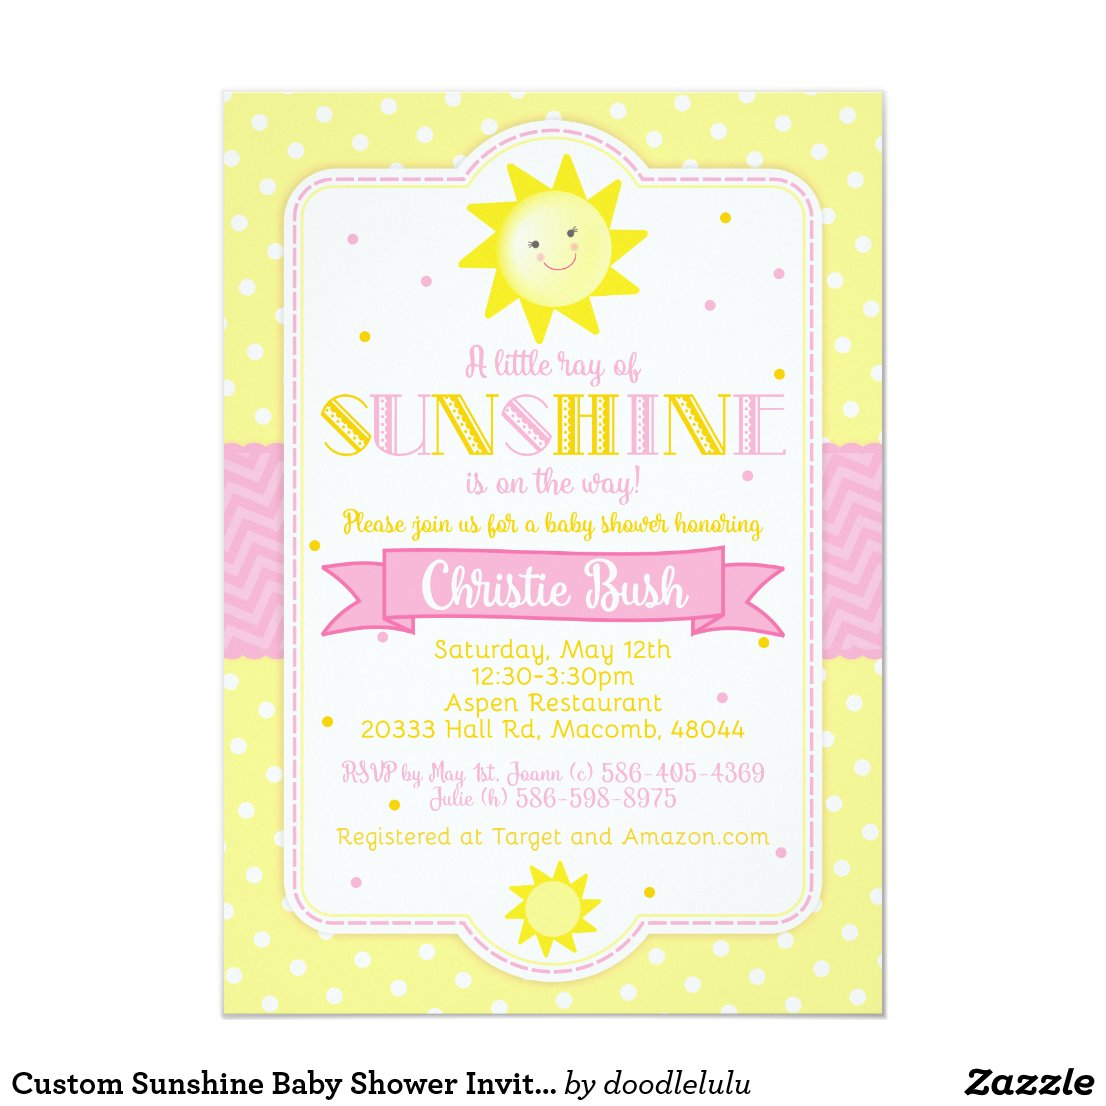 Custom Sunshine Baby Shower Invitation for Jamie